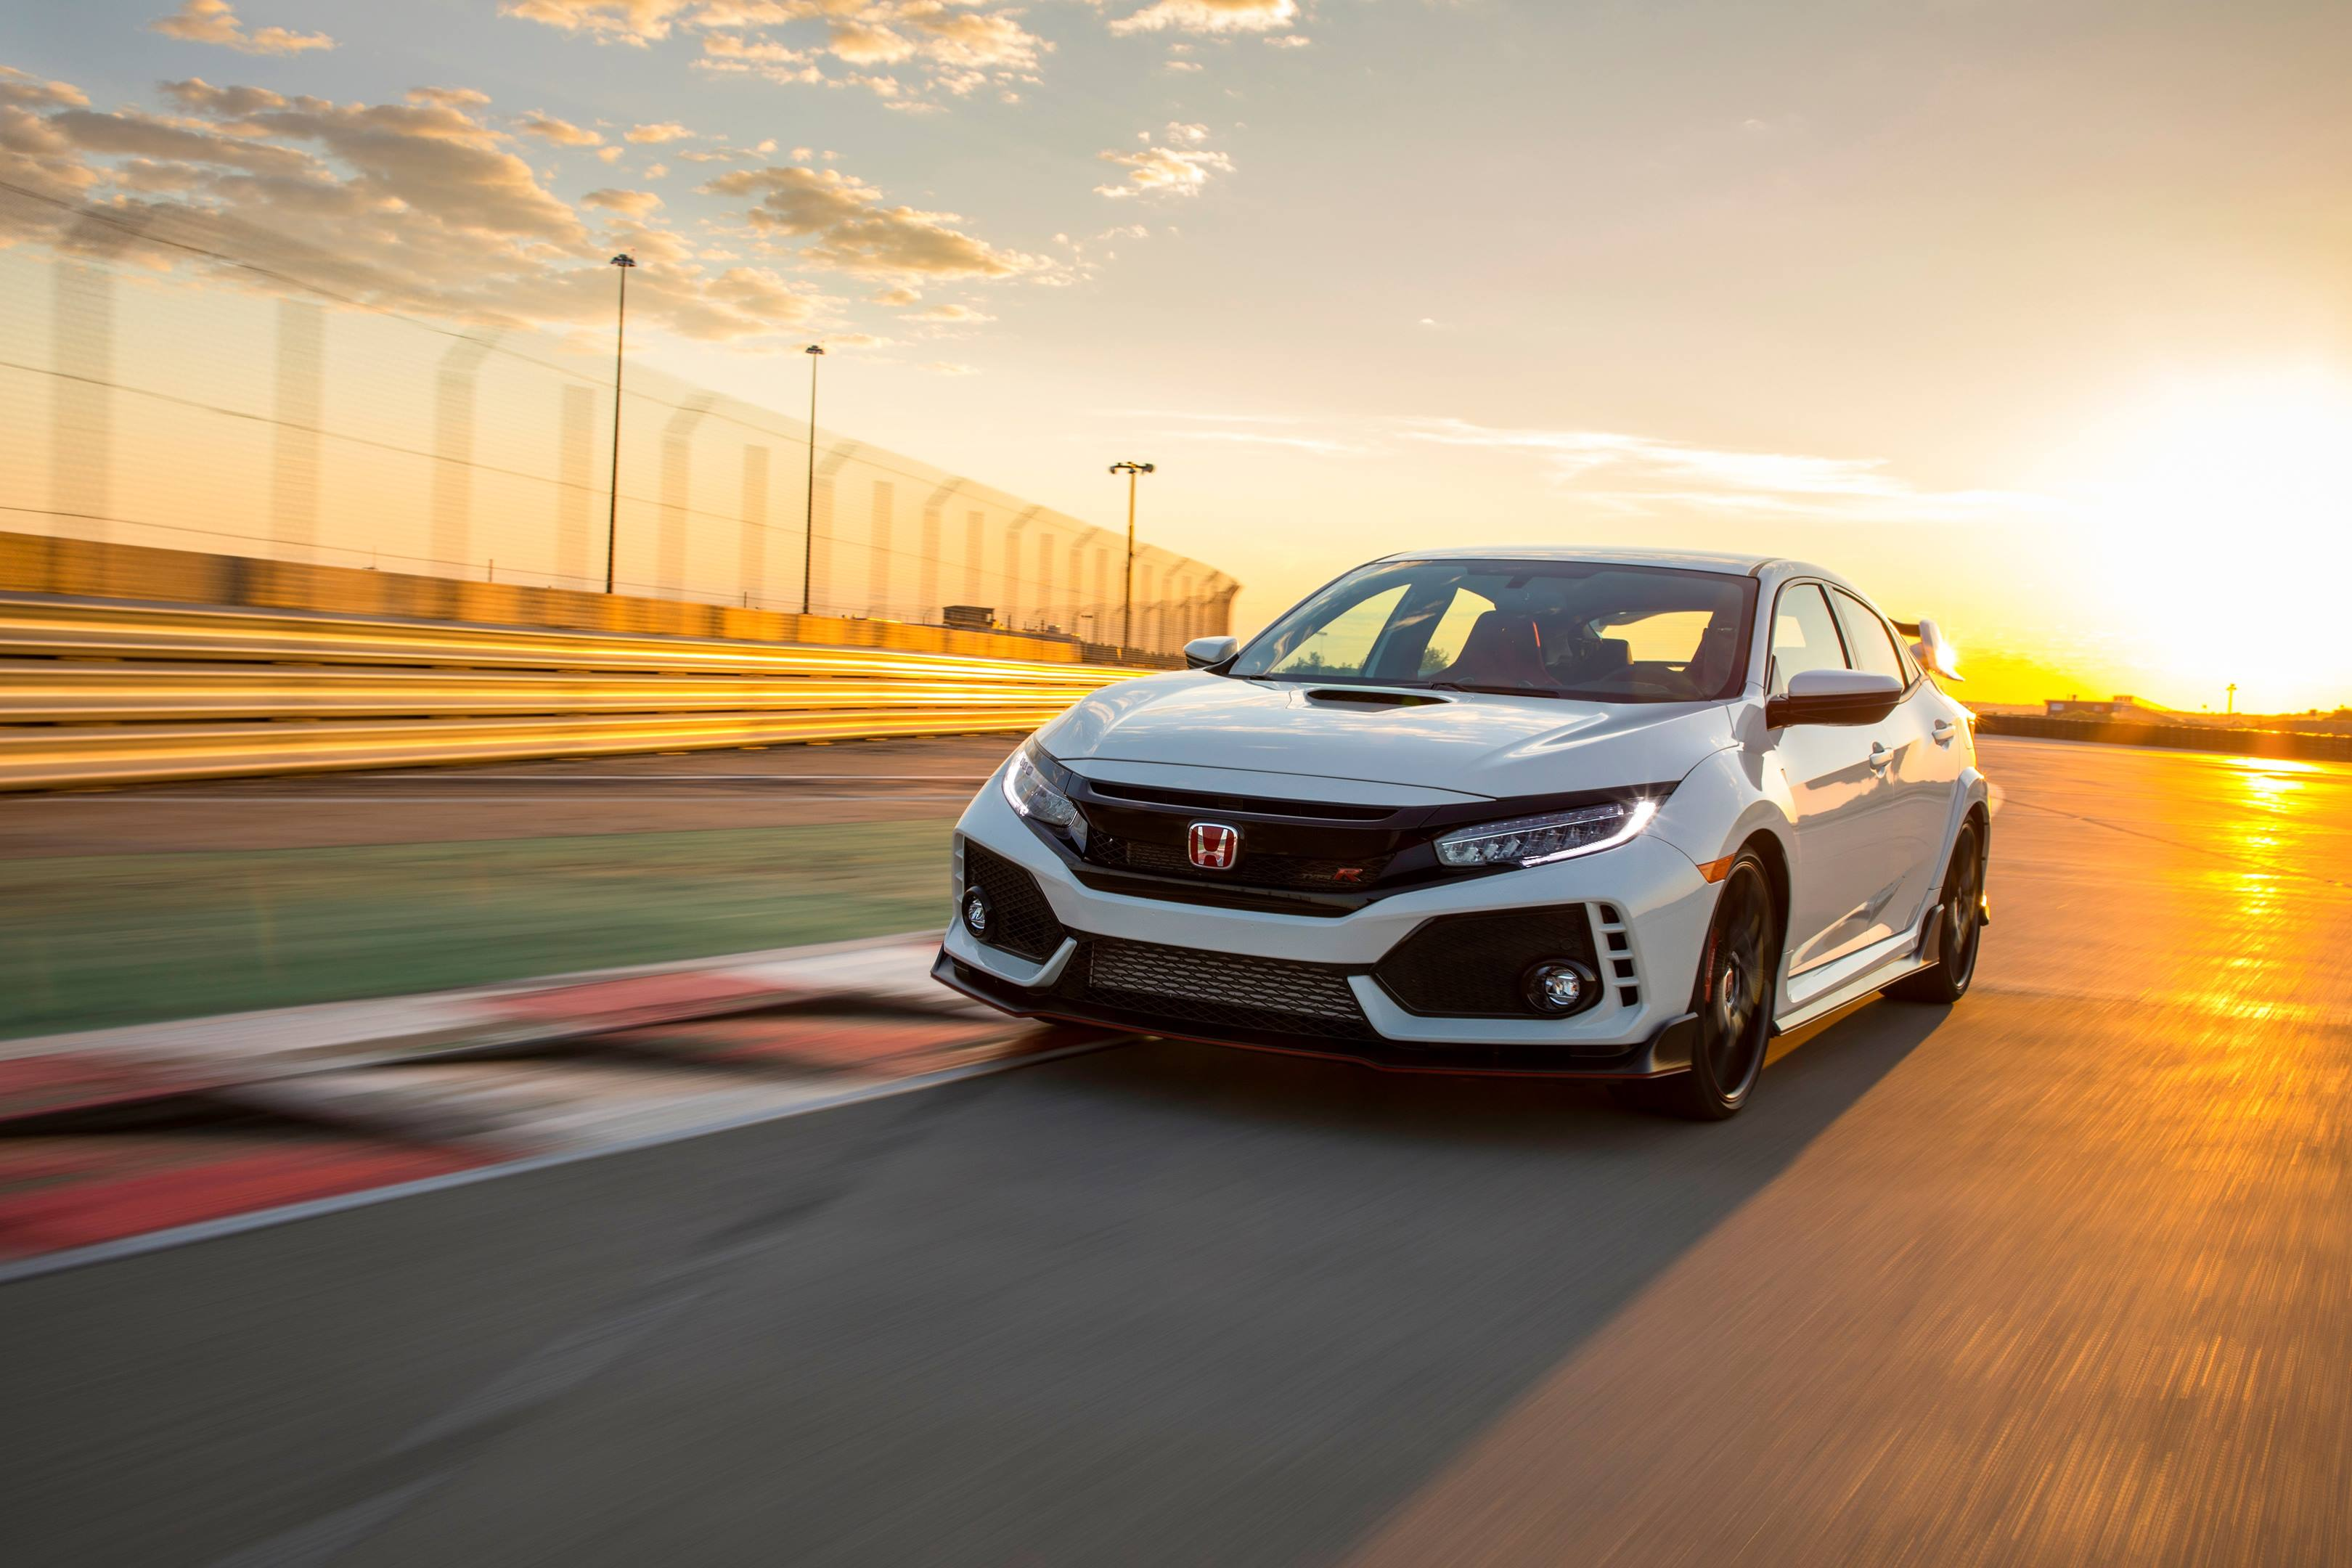 2017 Honda Civic Type R on the track